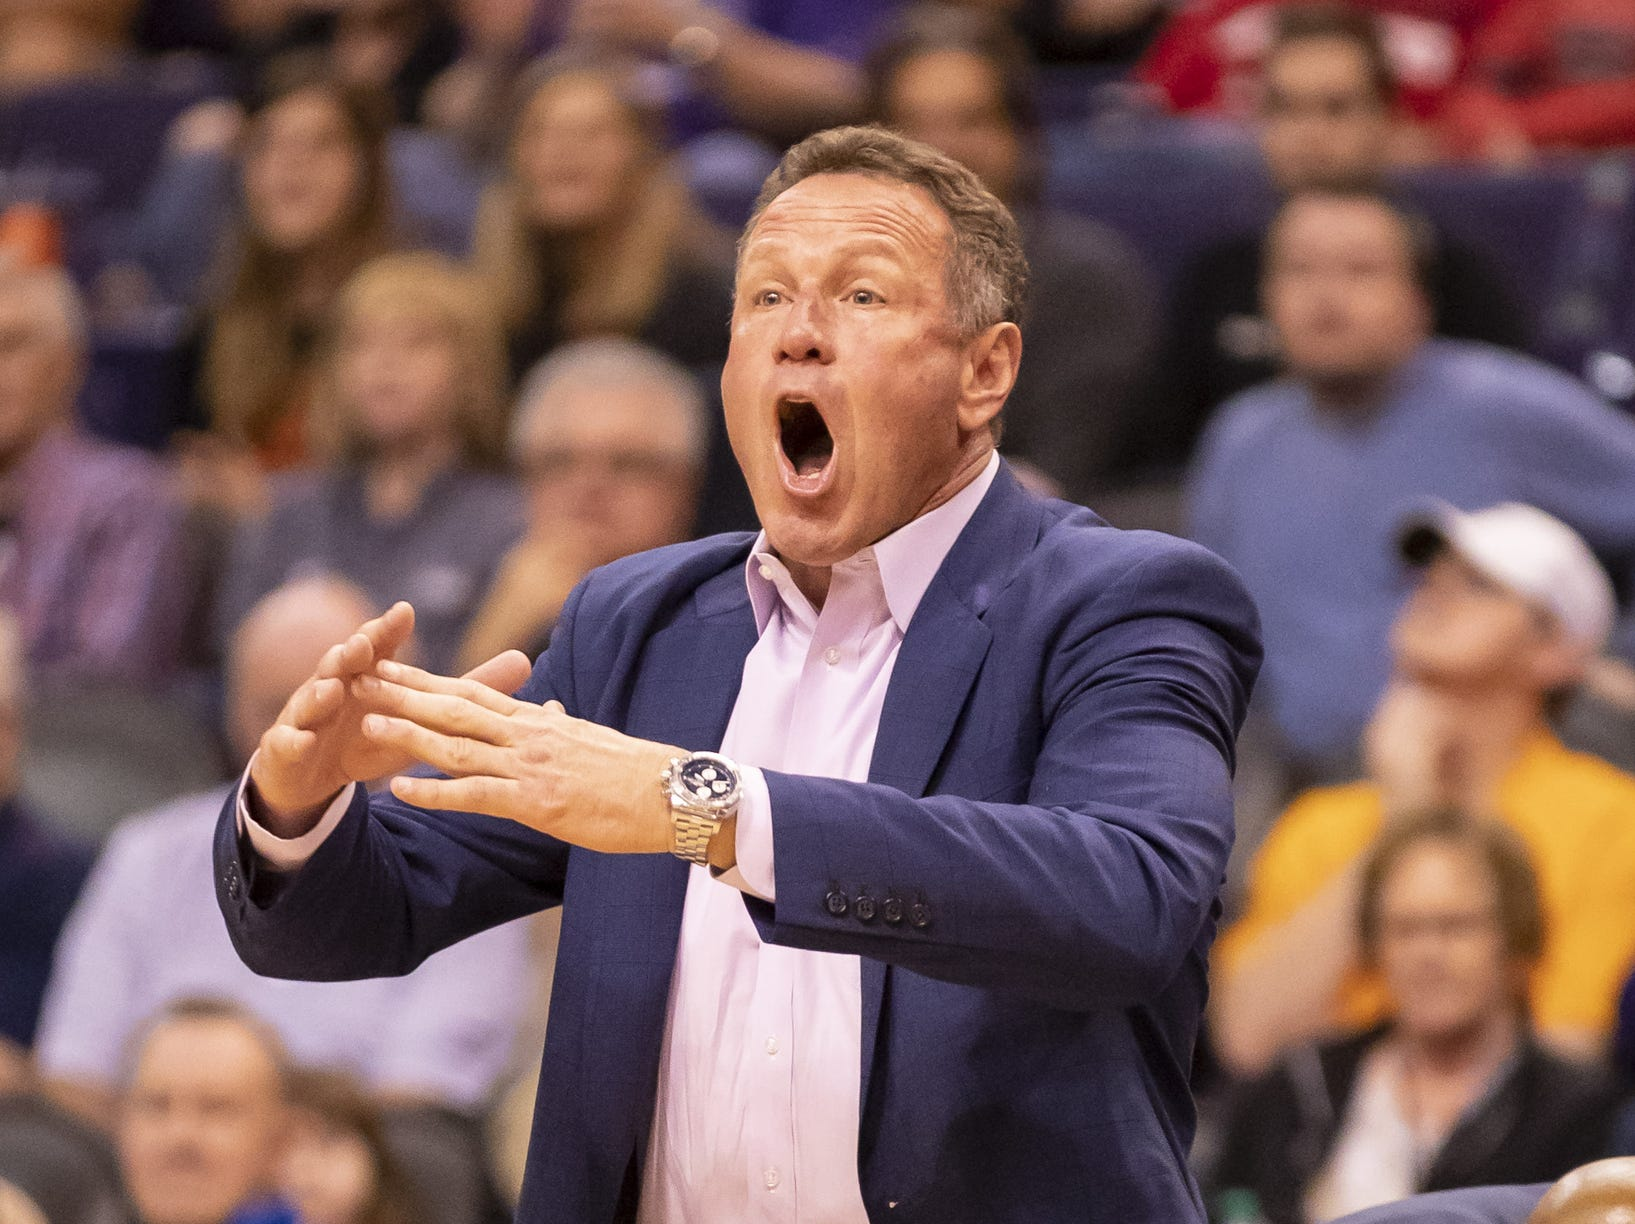 Head coach Dan Majerle of the Grand Canyon Antelopes motions during the 2018 Jerry Colangelo Classic against Nevada Wolf Pack at Talking Stick Resort Arena on Sunday, December 9, 2018 in Phoenix, Arizona.